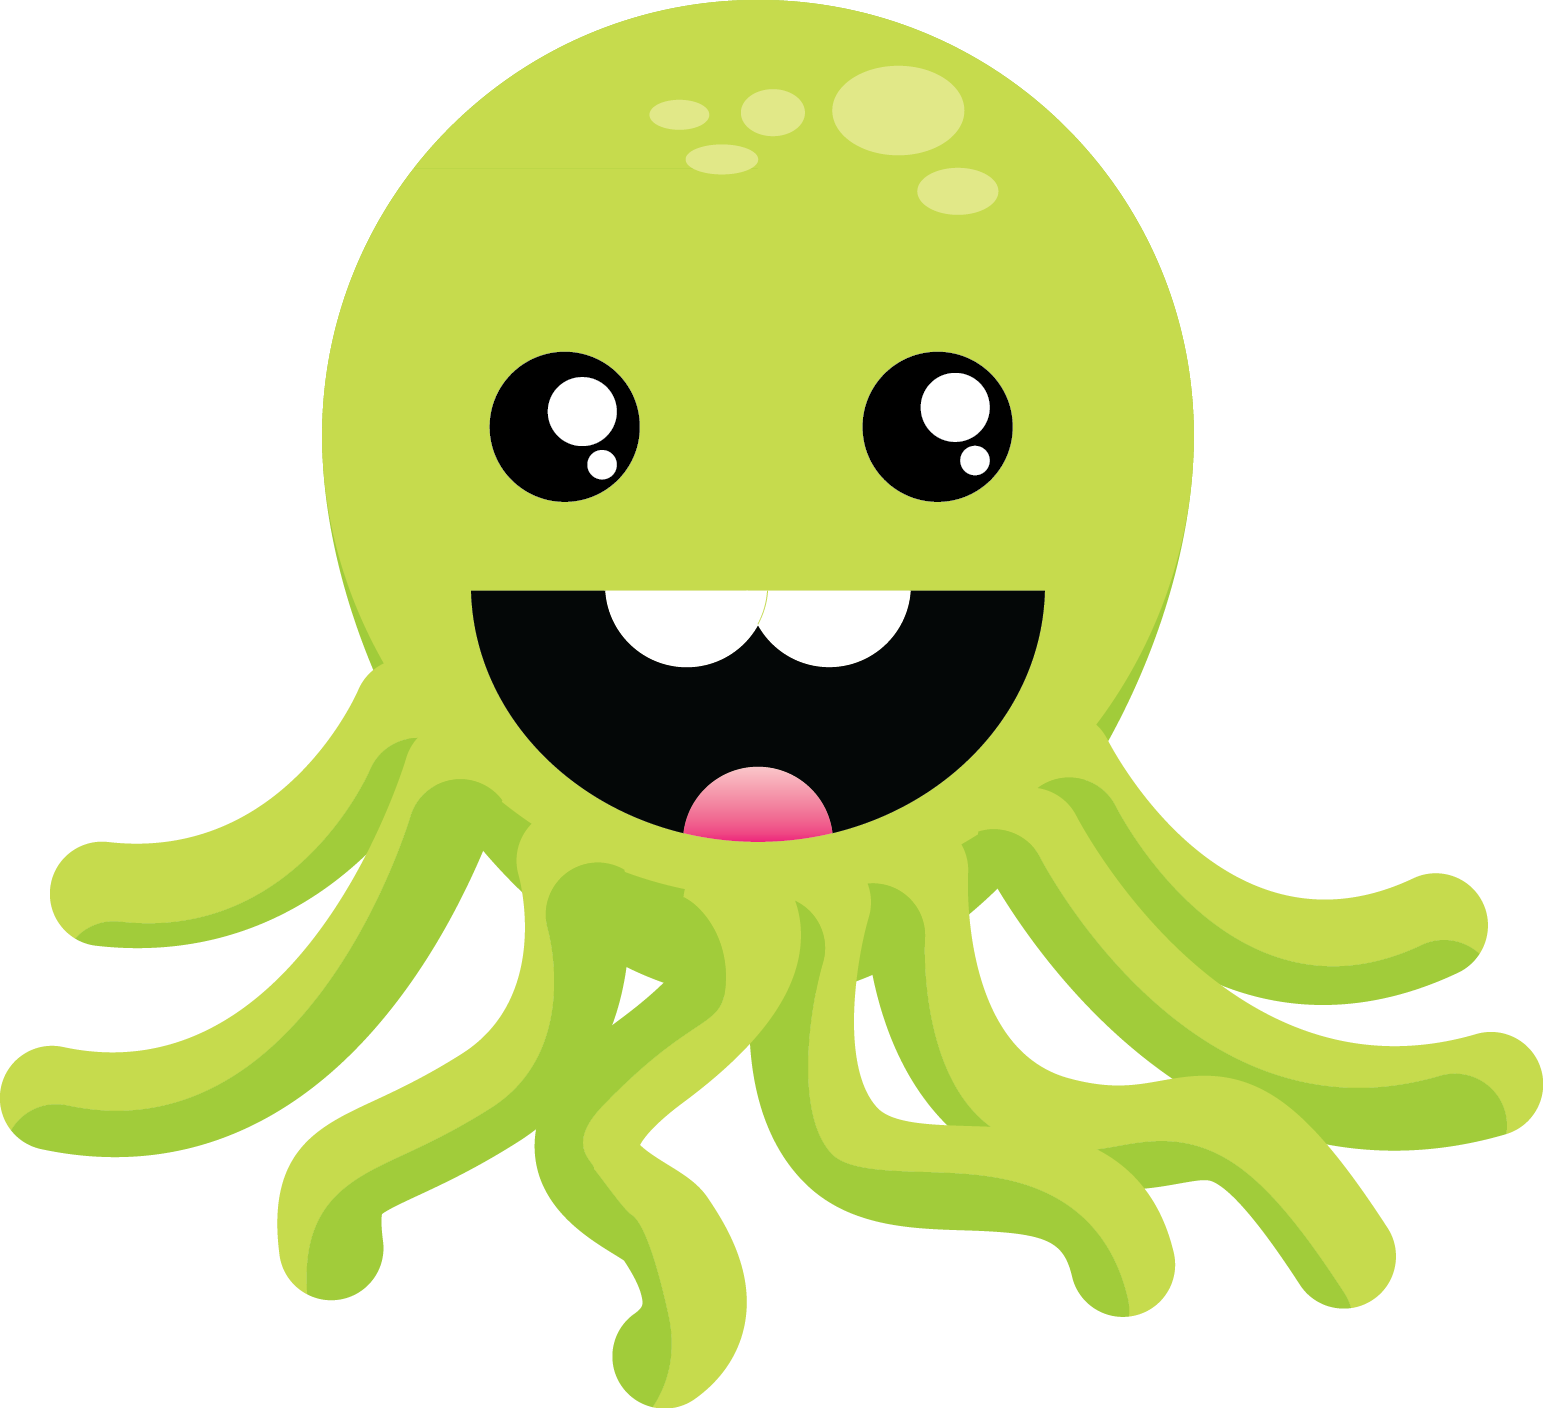 Cute Green Octopus by nameIsRaJ on DeviantArt